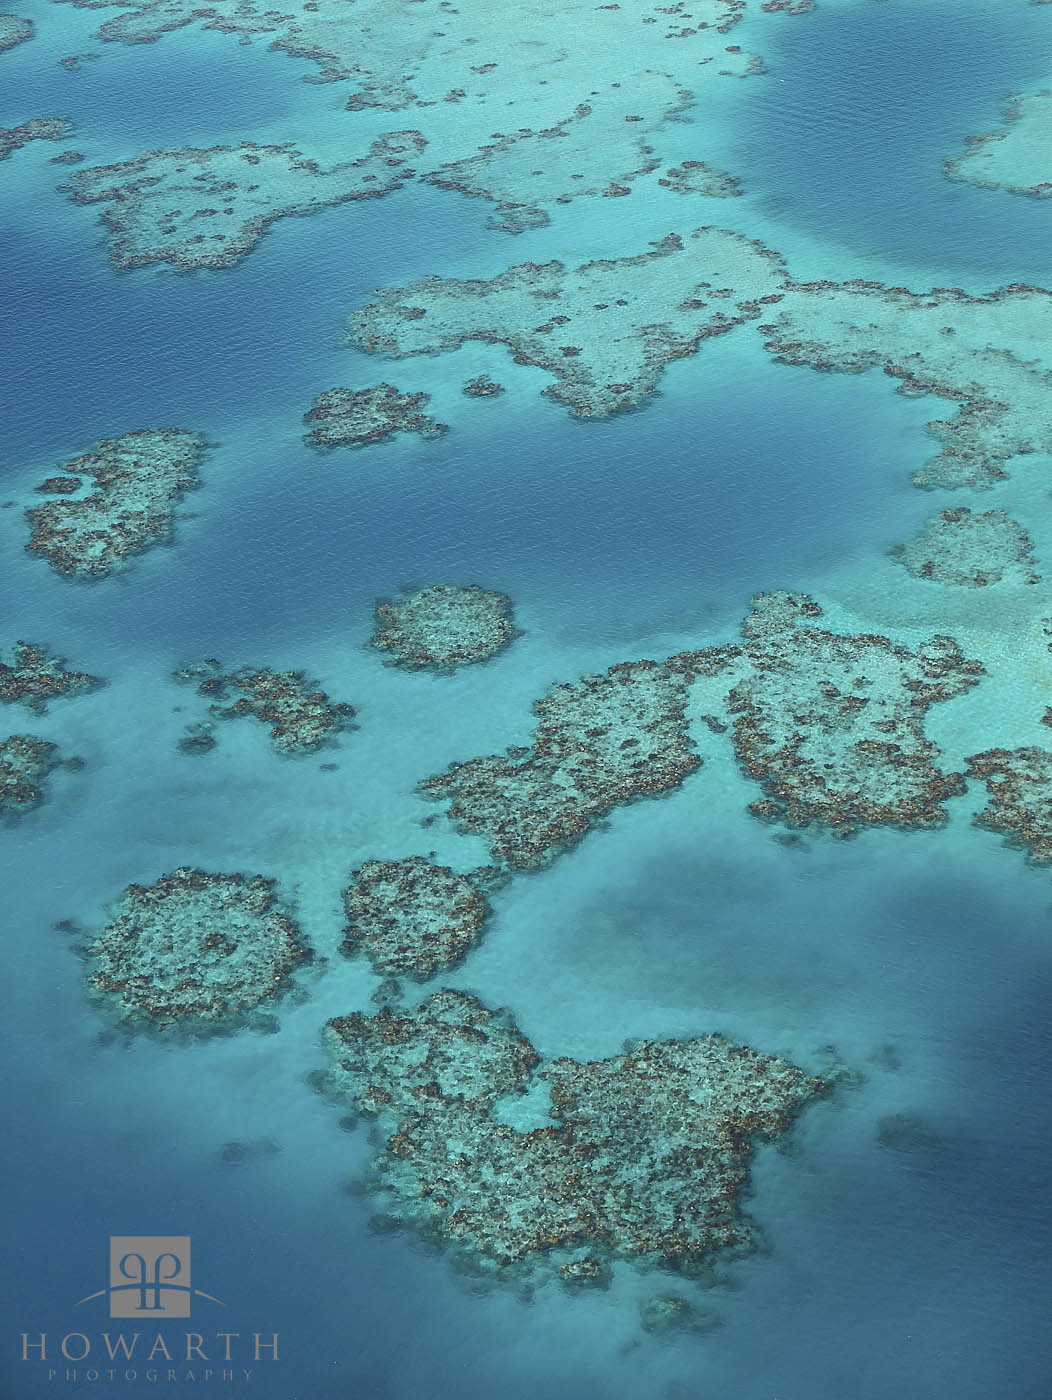 A cluster of reef just off the West side, turquoise waters